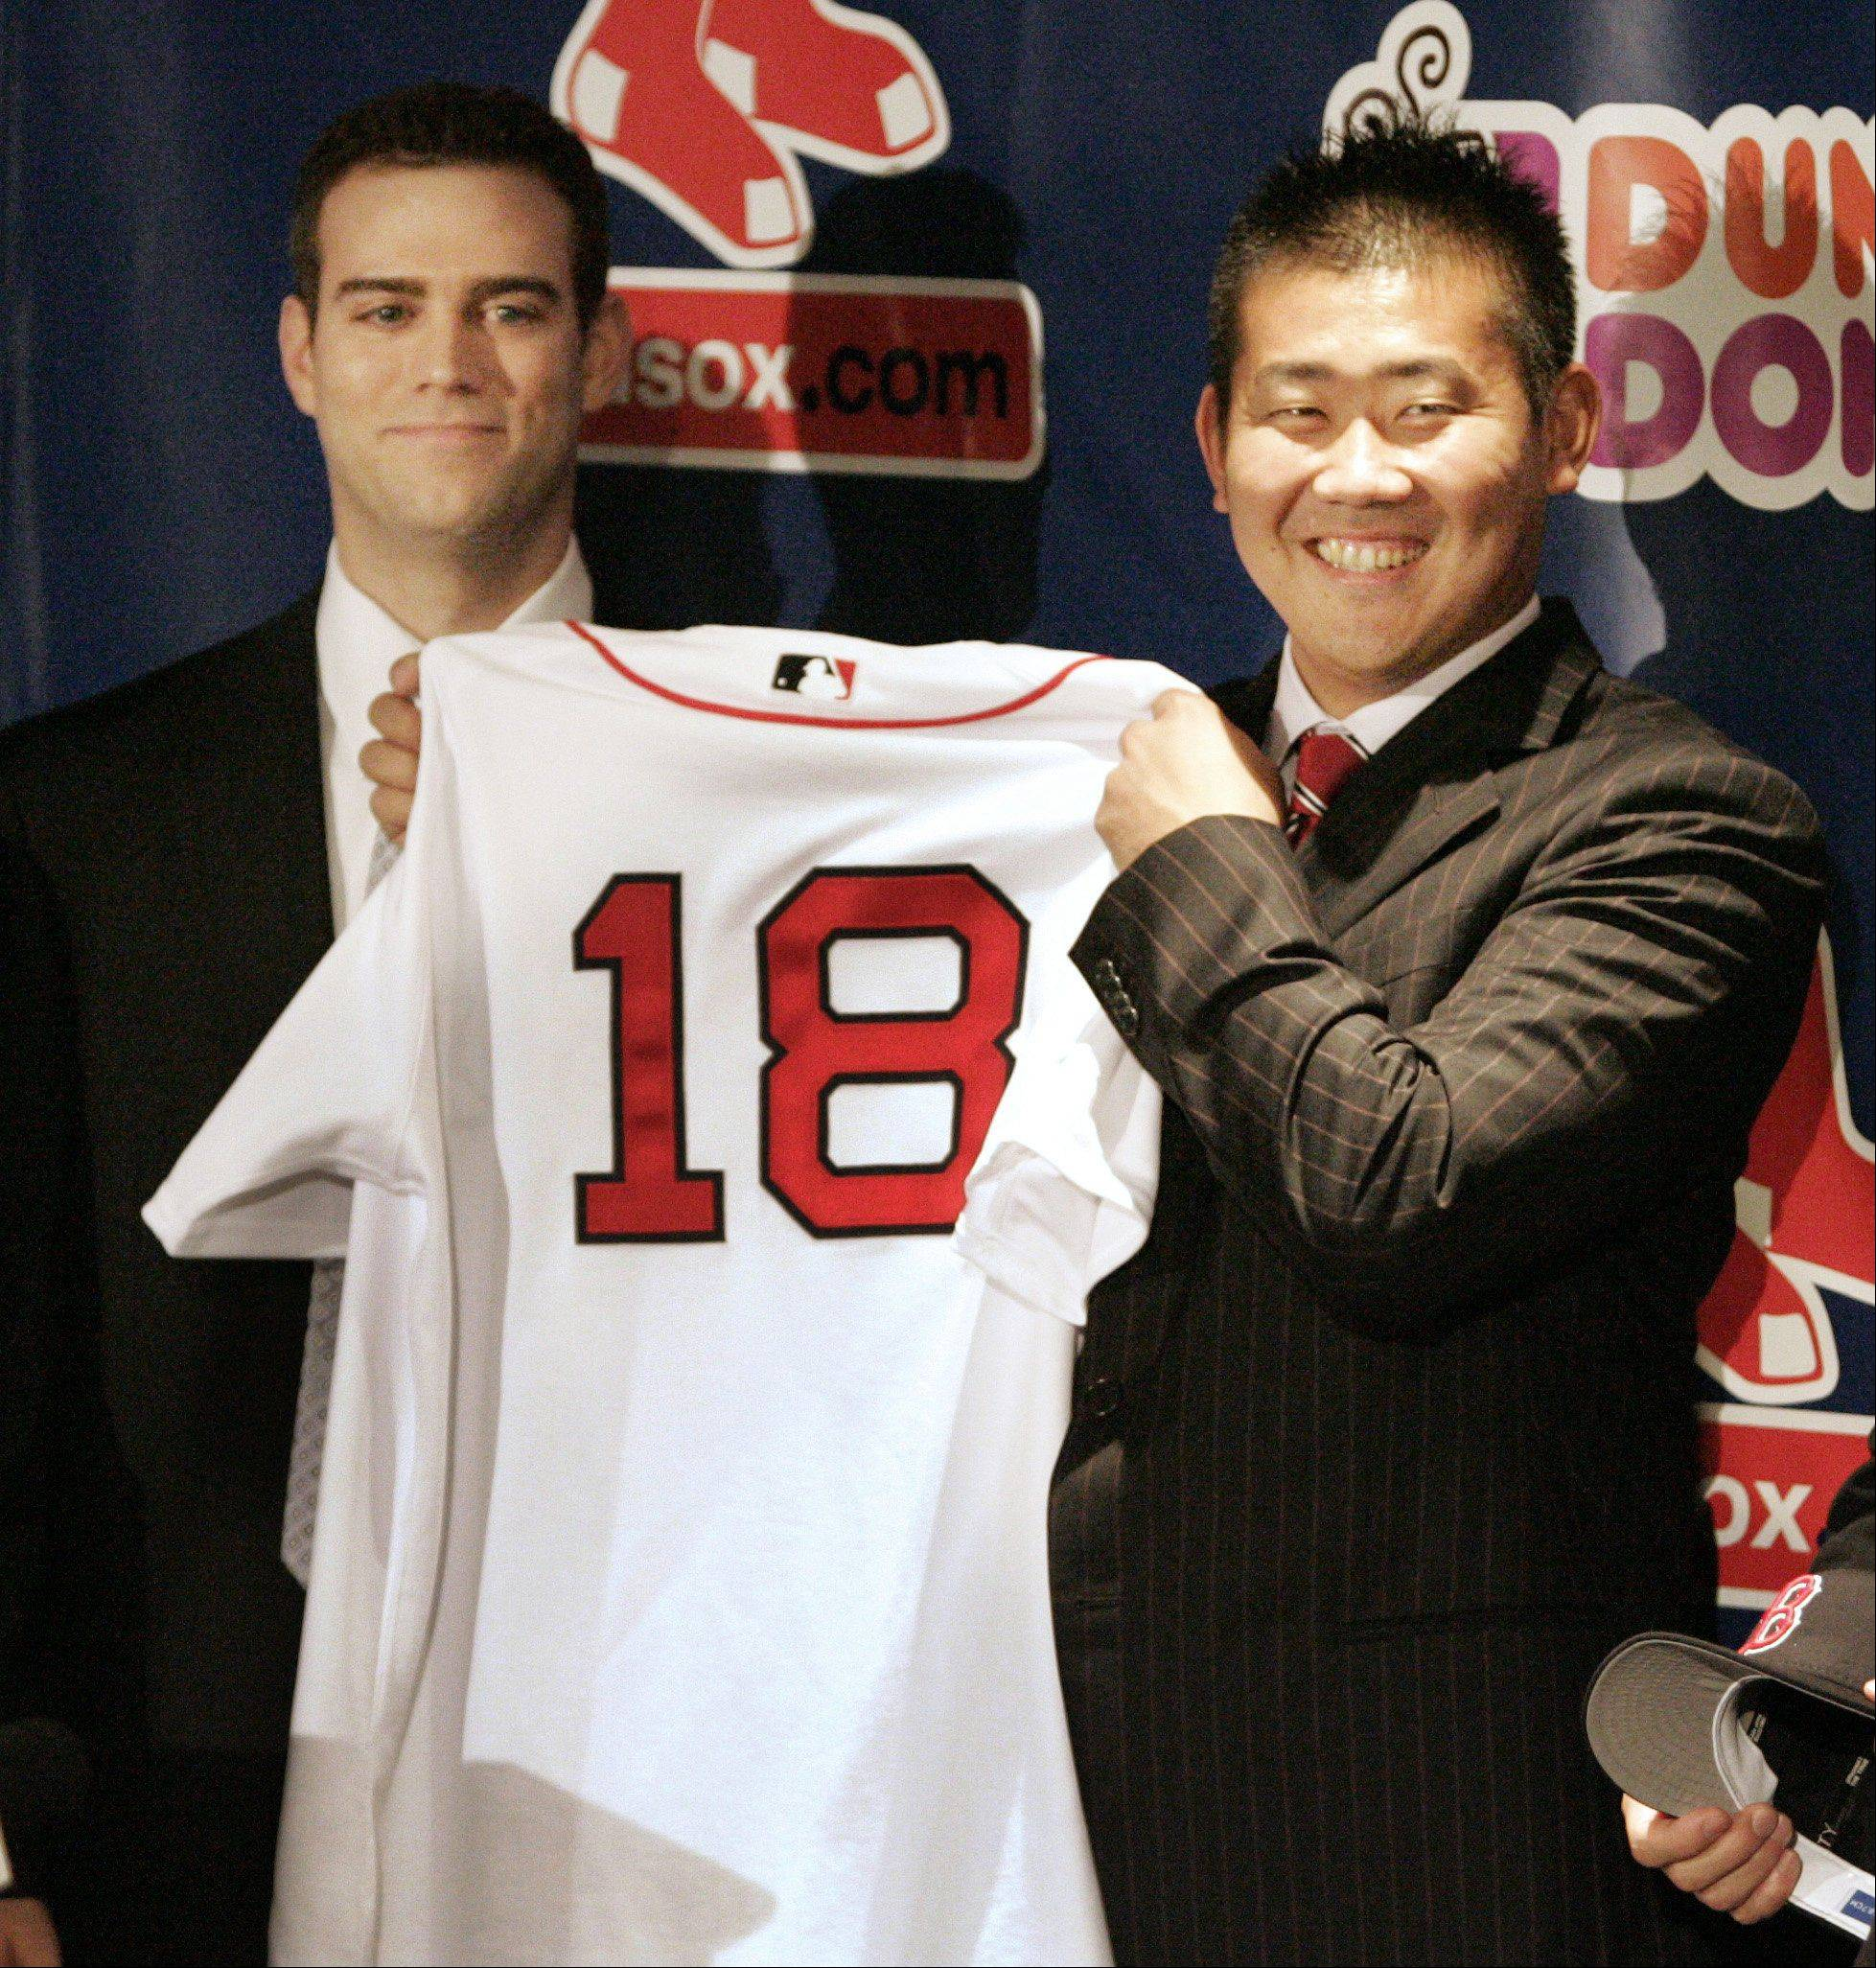 Newly signed Boston Red Sox Japanese pitcher Daisuke Matsuzaka, right, displays his new Red Sox jersey as team manager Theo Epstein, left, looks on during a news conference held to announce the signing, in Boston, Thursday, Dec. 14, 2006.